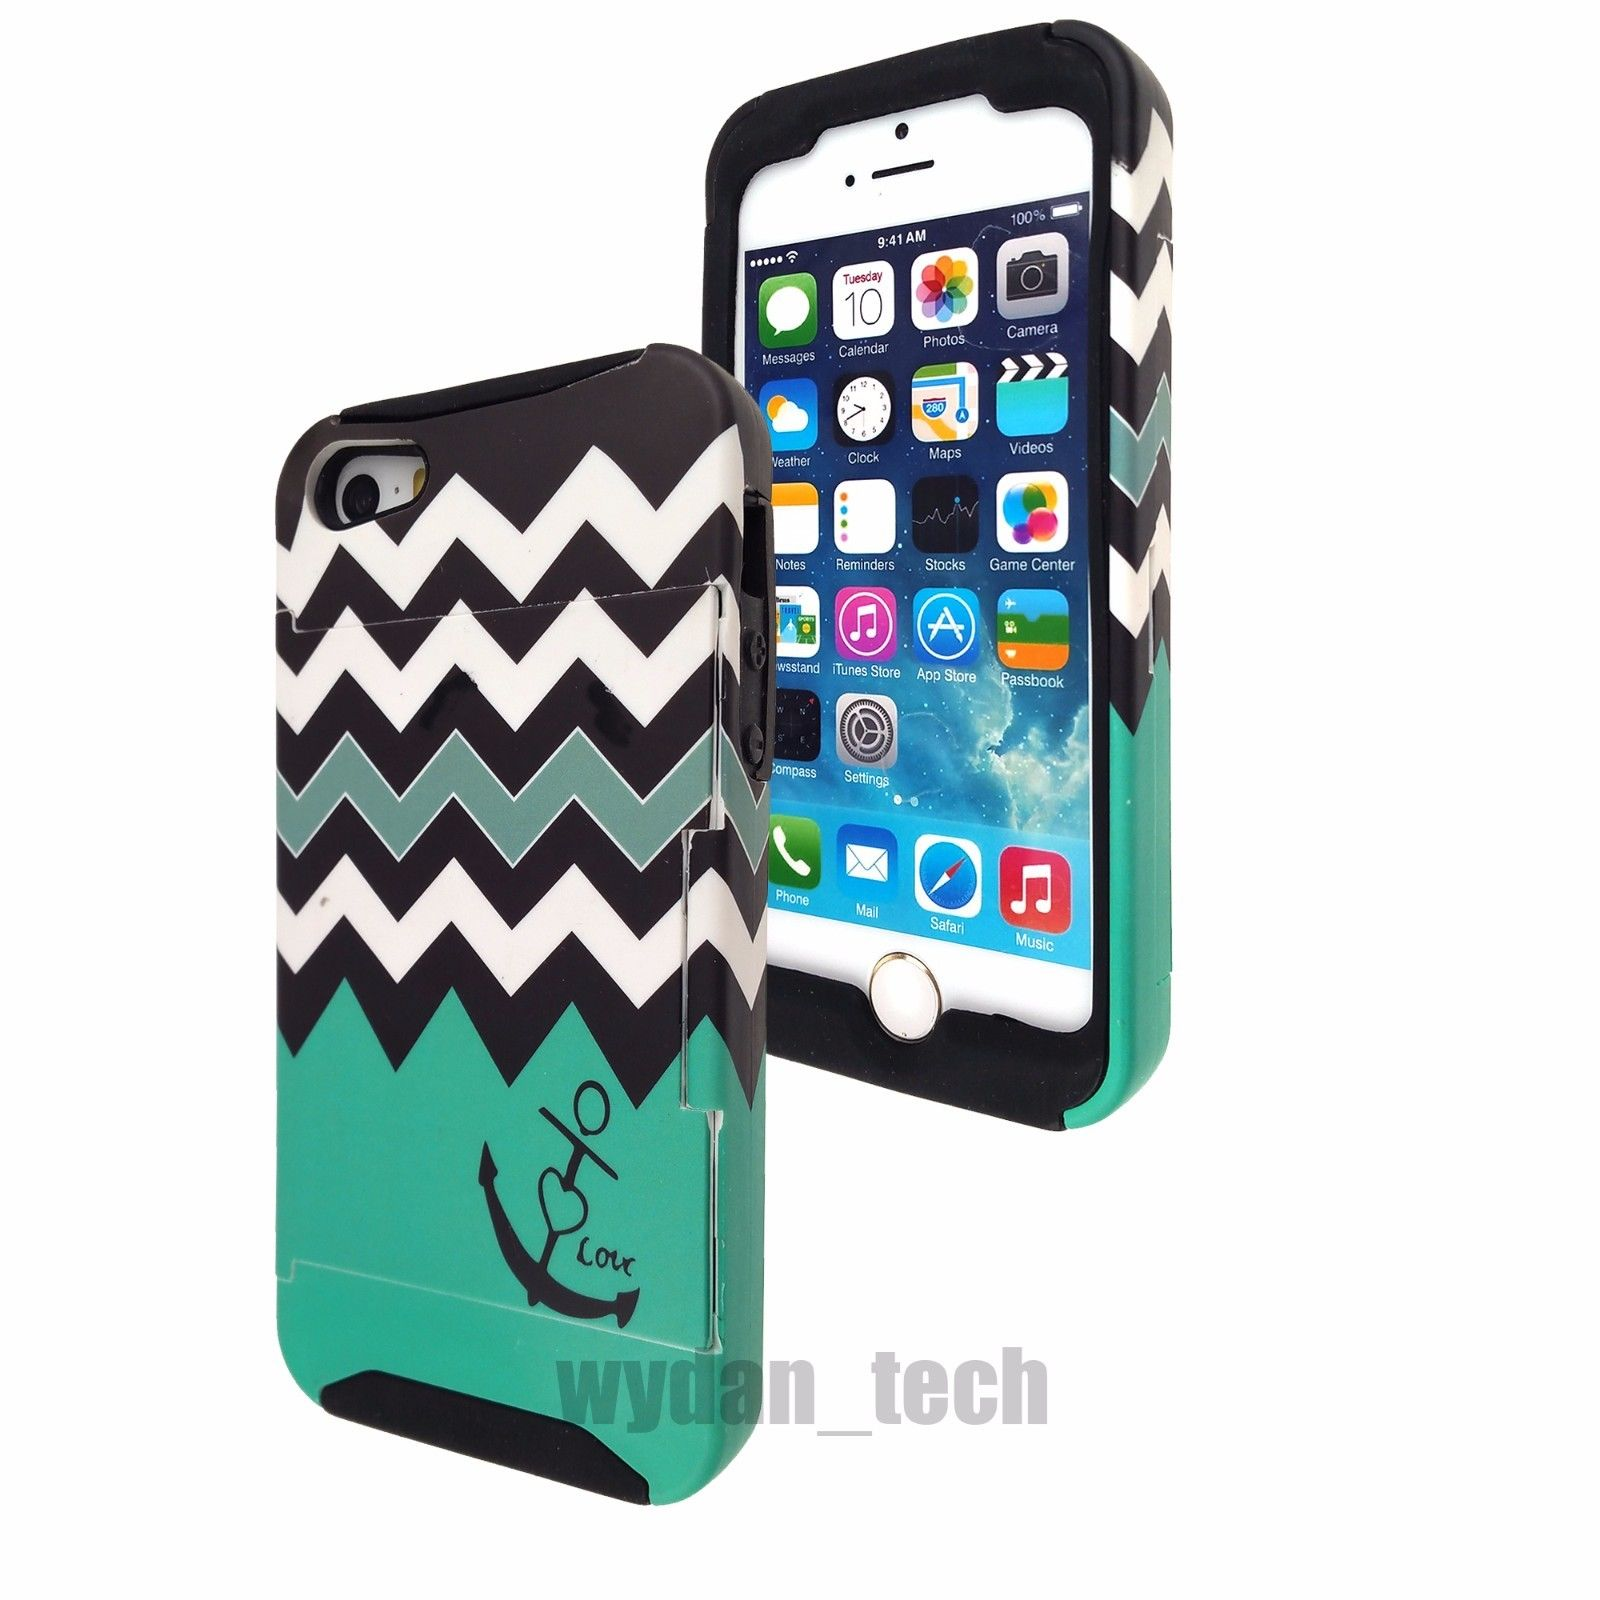 Apple iPhone 5C Case - Wydan Hybrid Credit Card Case Flip Stand Cover Teal Anchor